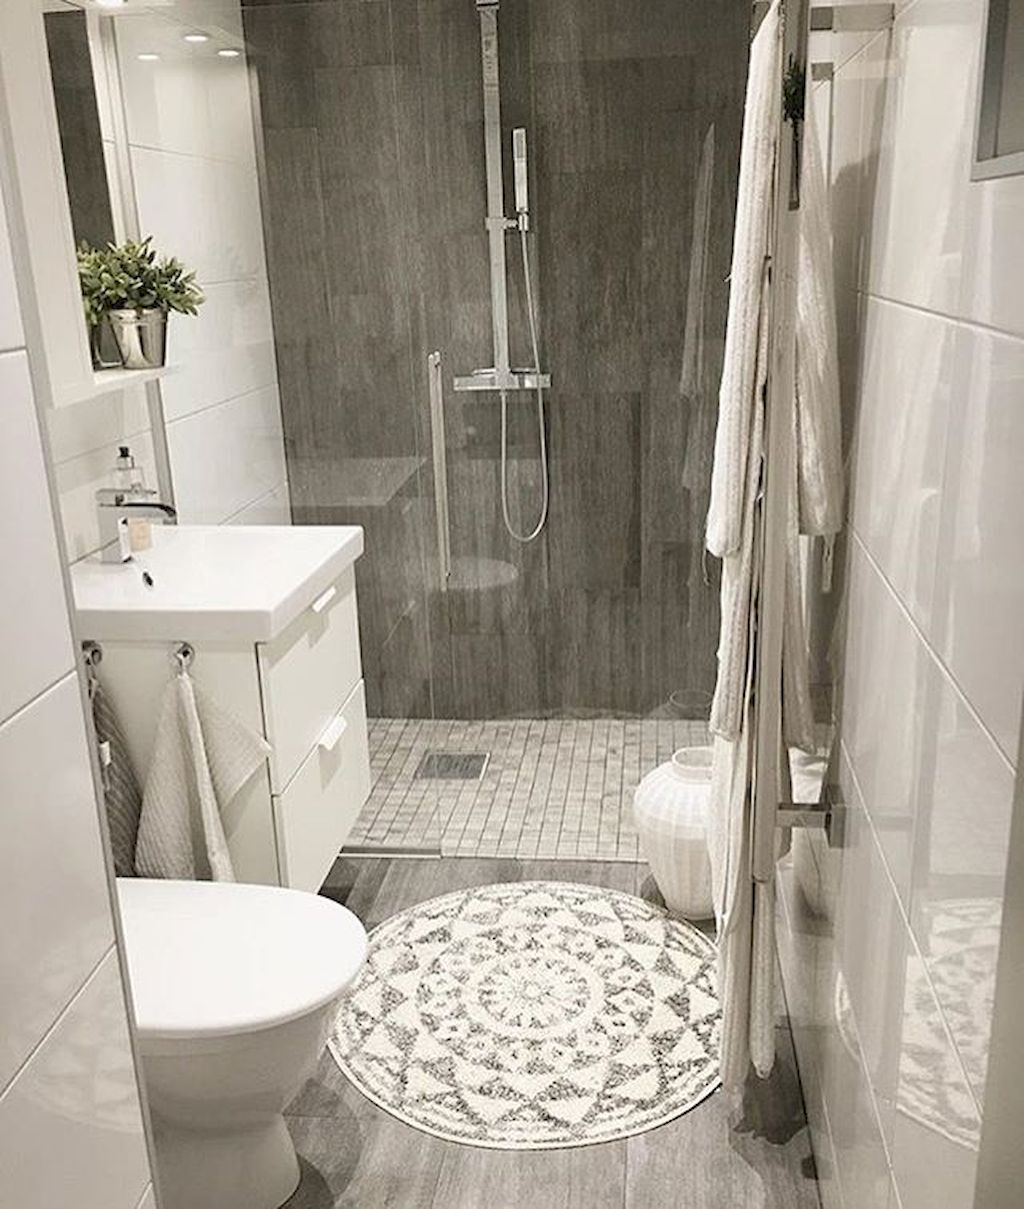 Small Bathroom Designs On A Budget Best Small Bathroom Remodel Ideas On A Budget 4  Small Bathroom